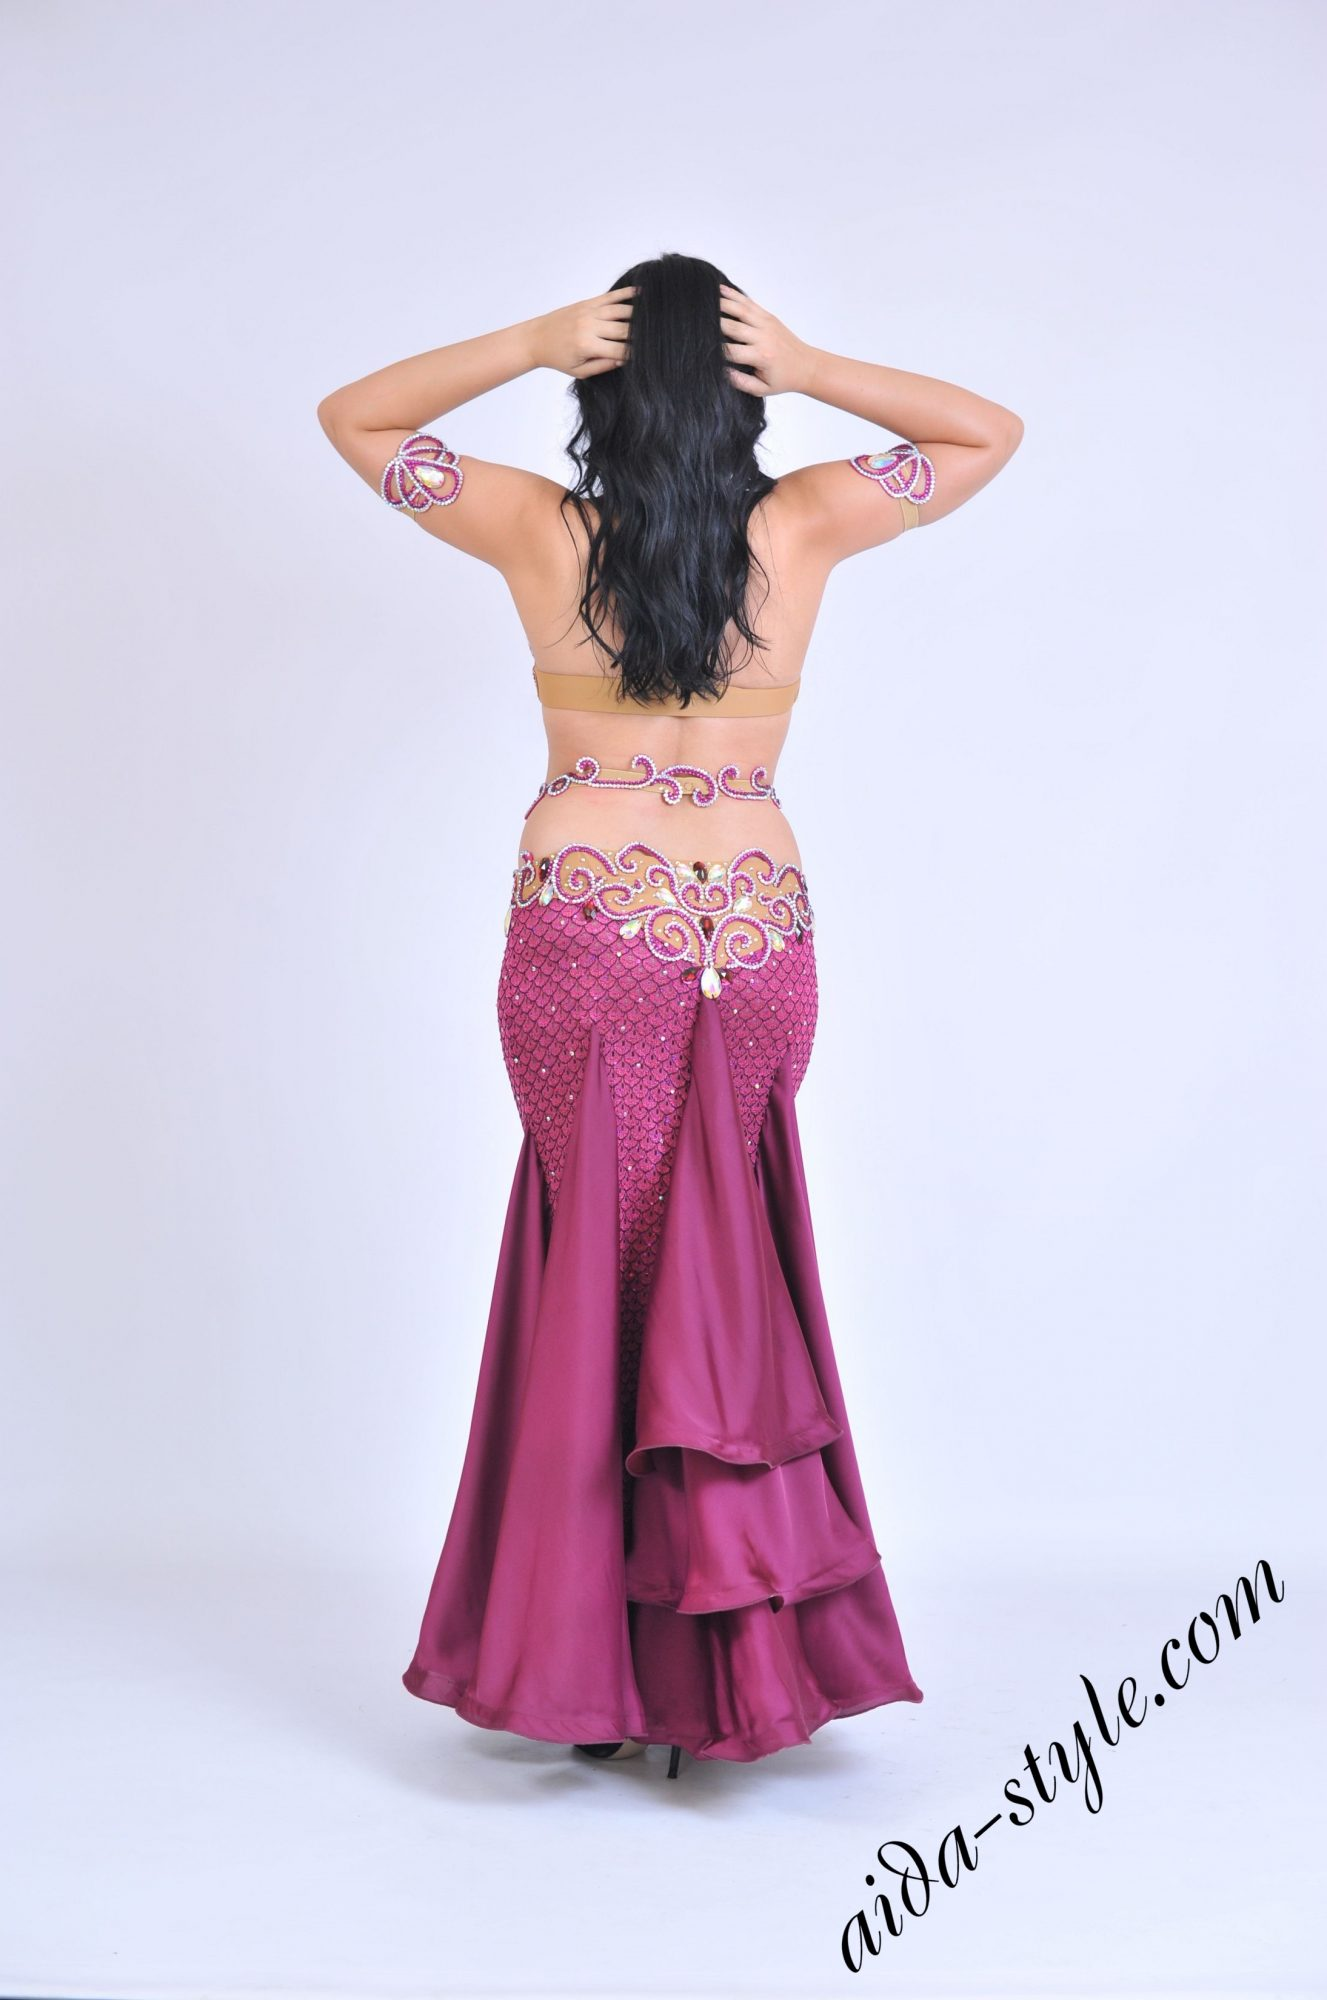 Bordeaux belly dance outfit by Aida Style boutique